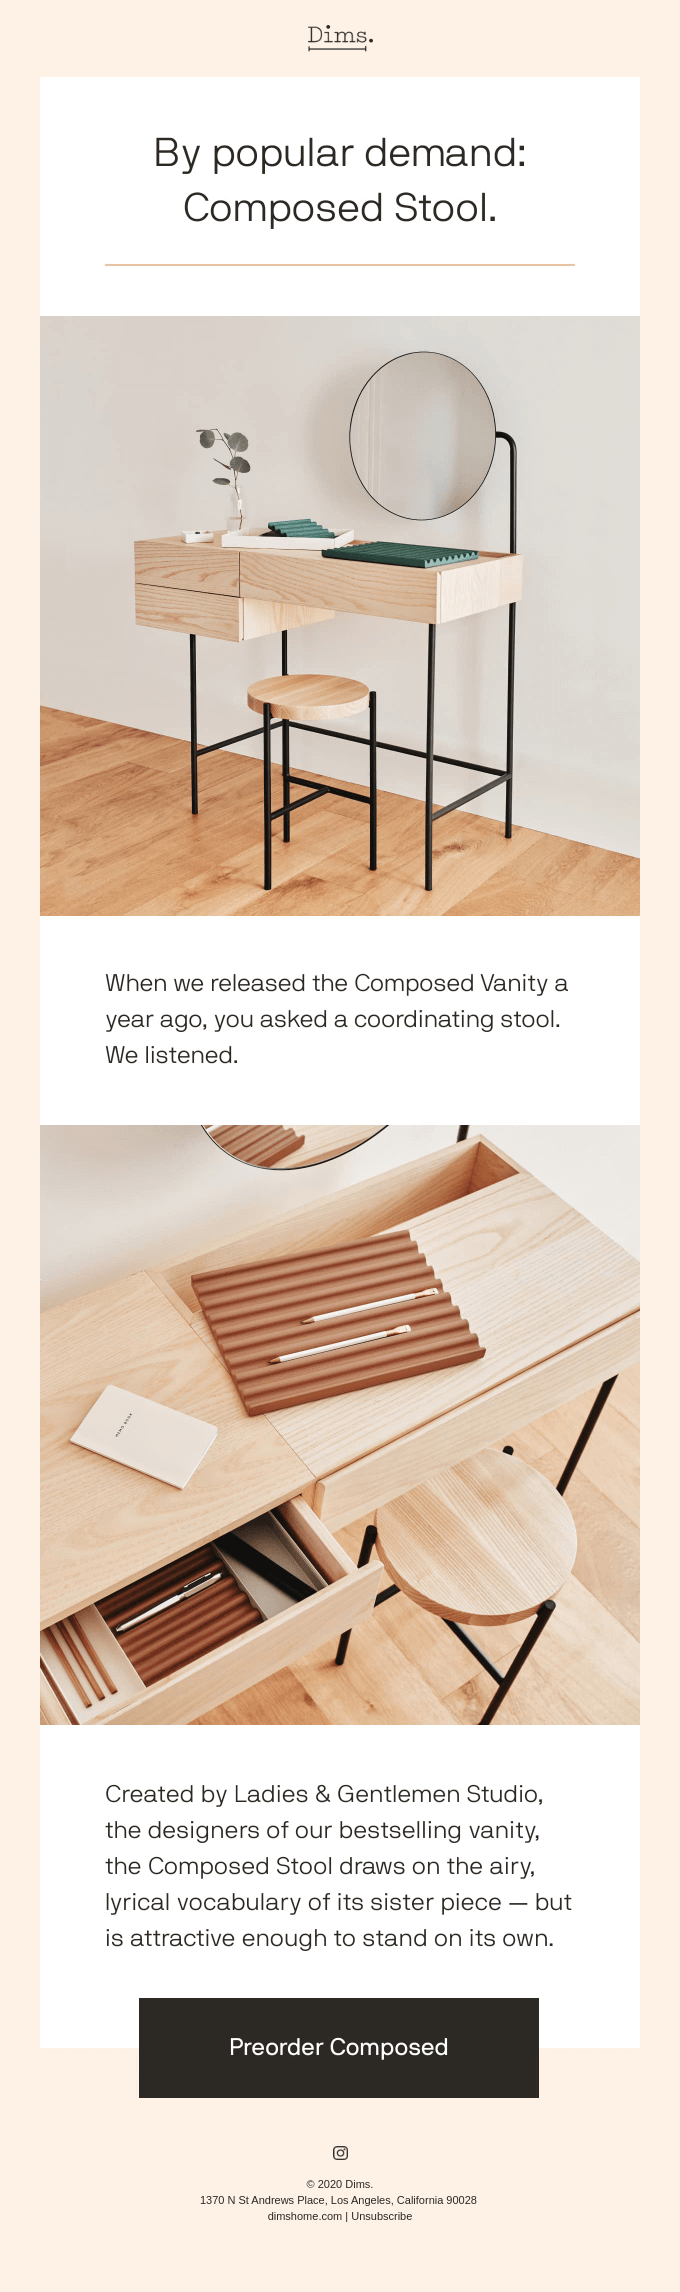 New in: Composed Stool.